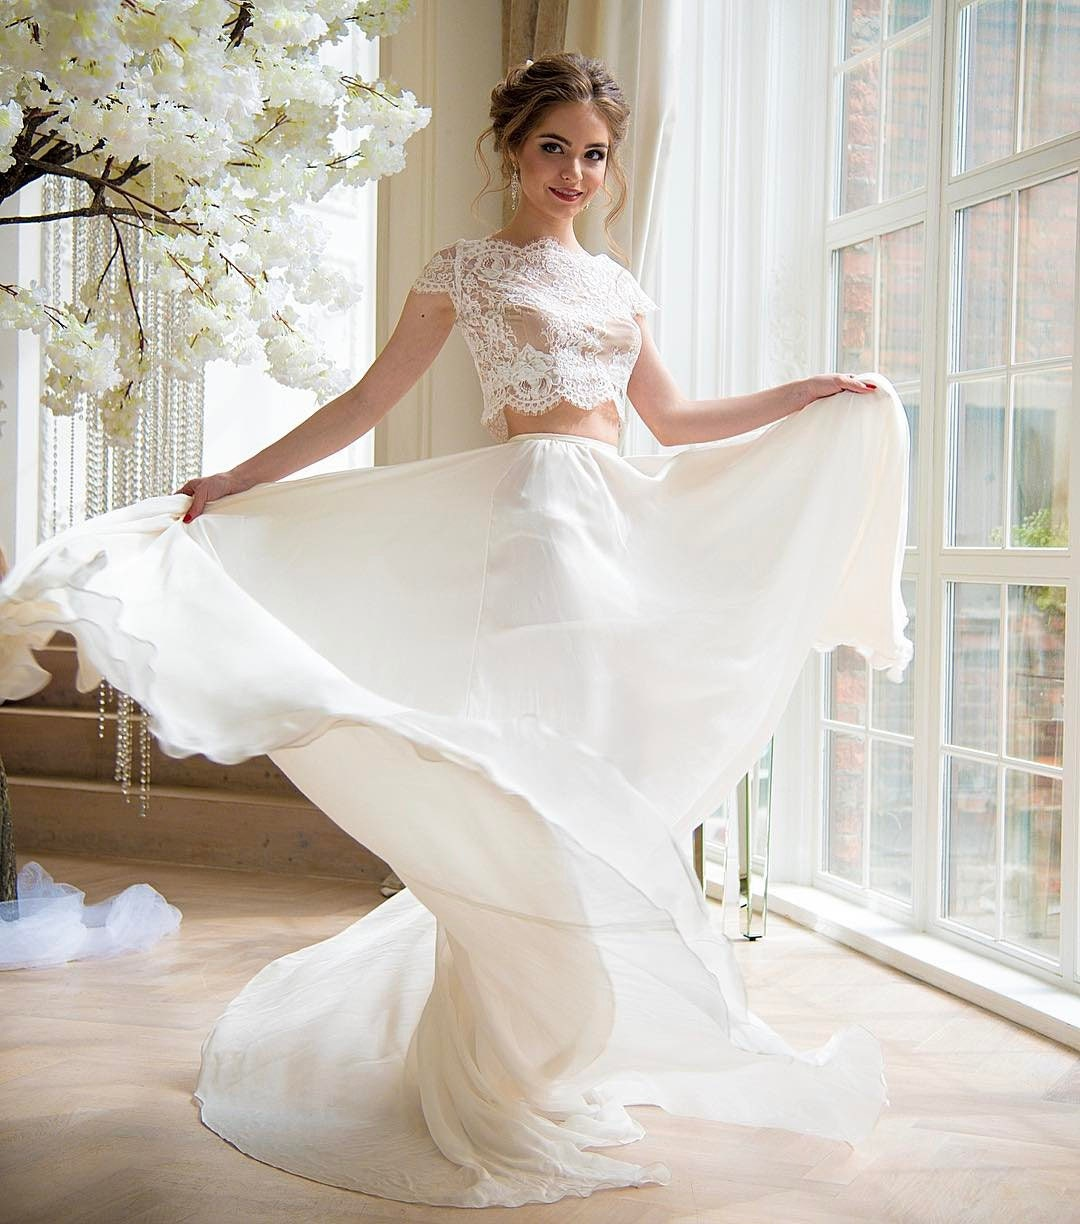 Wedding Gown Tops: Wedding Crop Top Lace Crop Top Crop Top Wedding Dress Crop